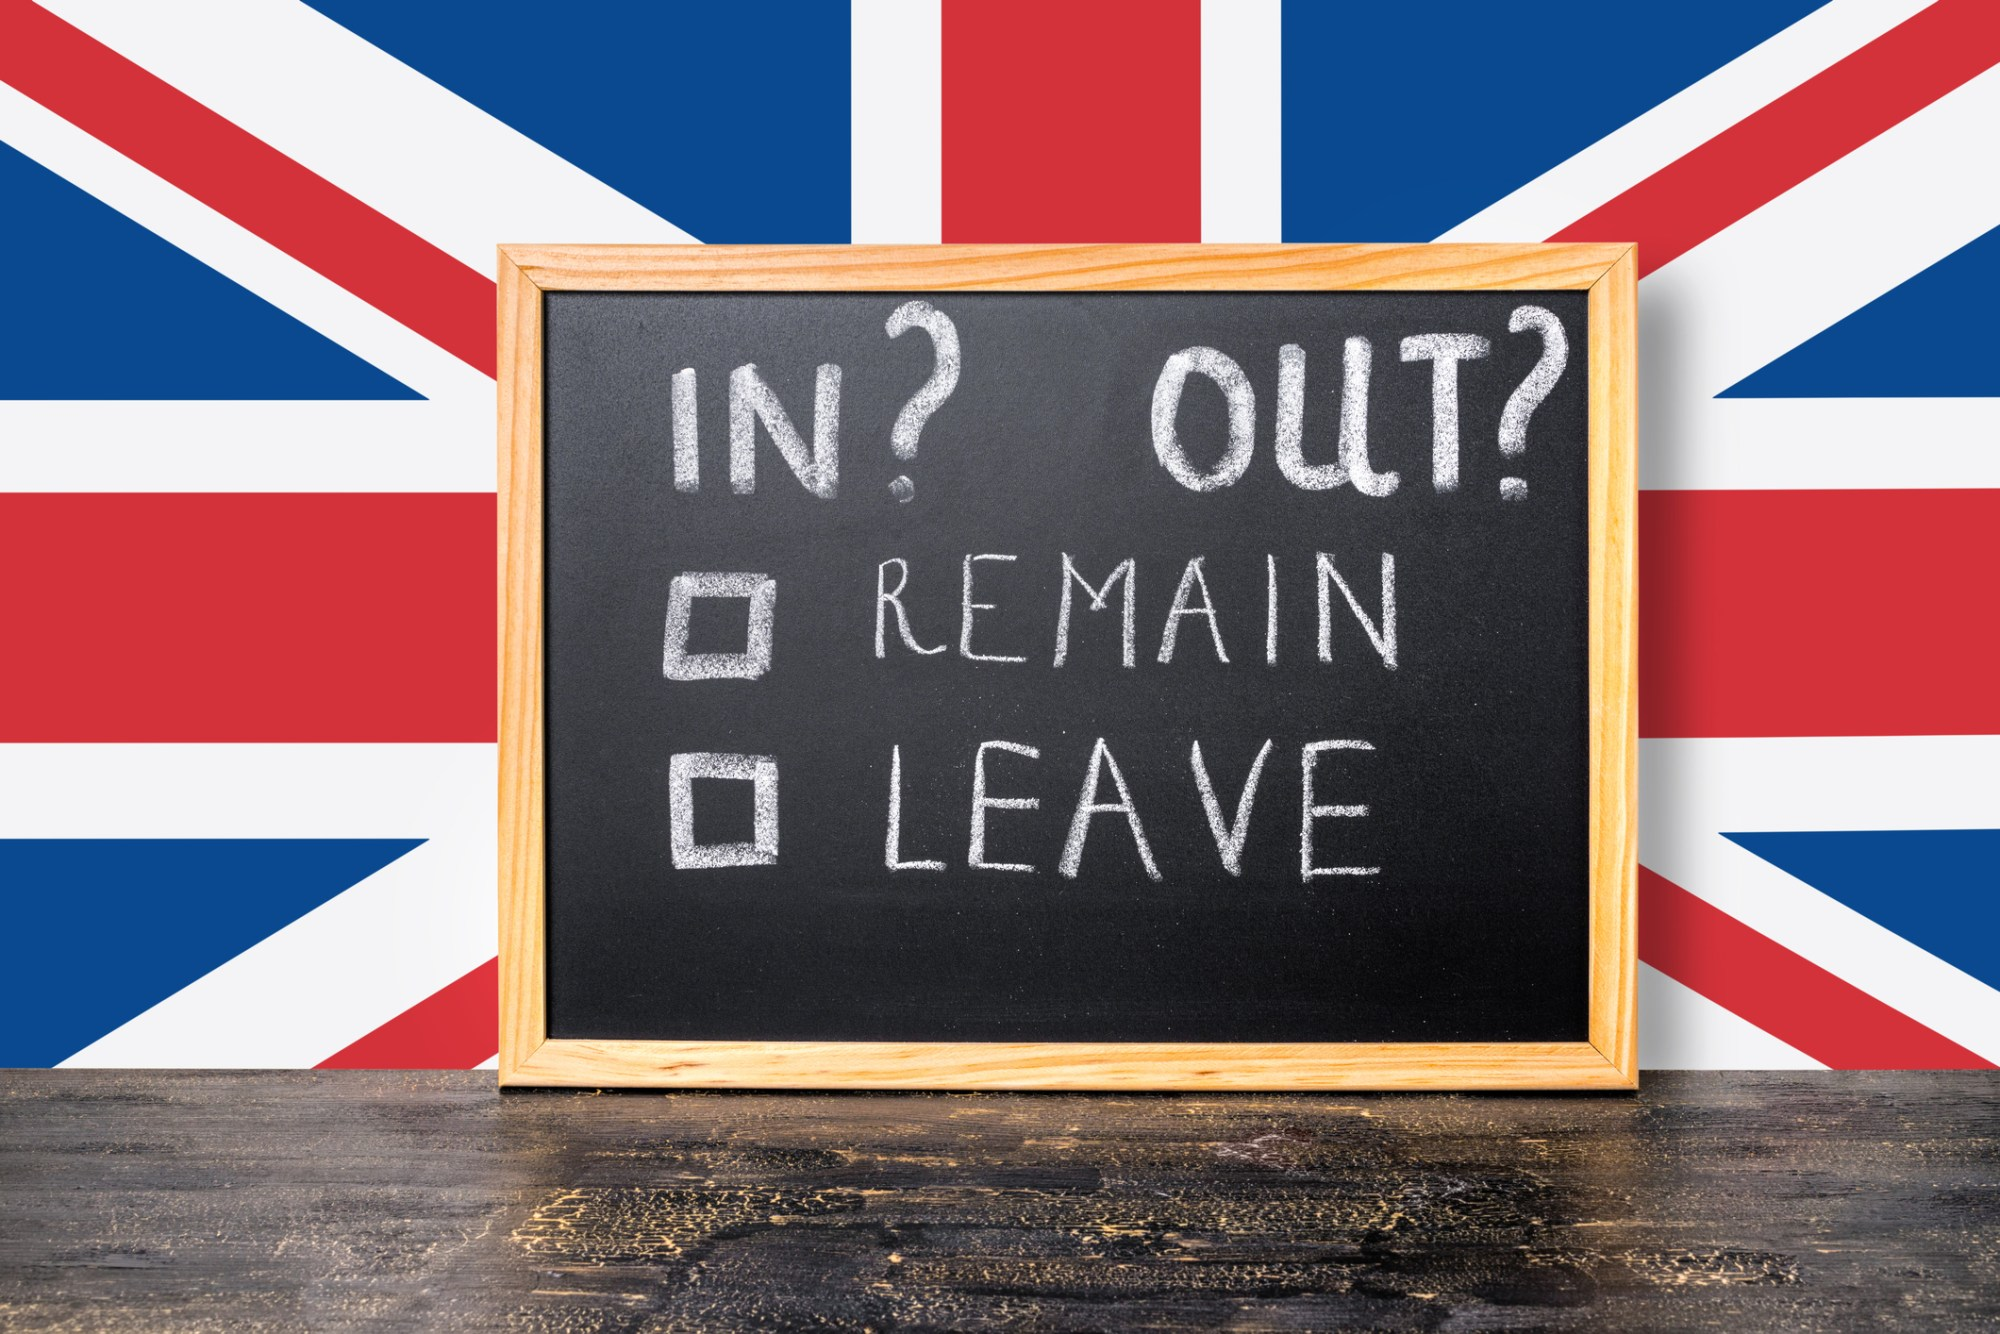 Brexit is a messy divorce for EU and UK